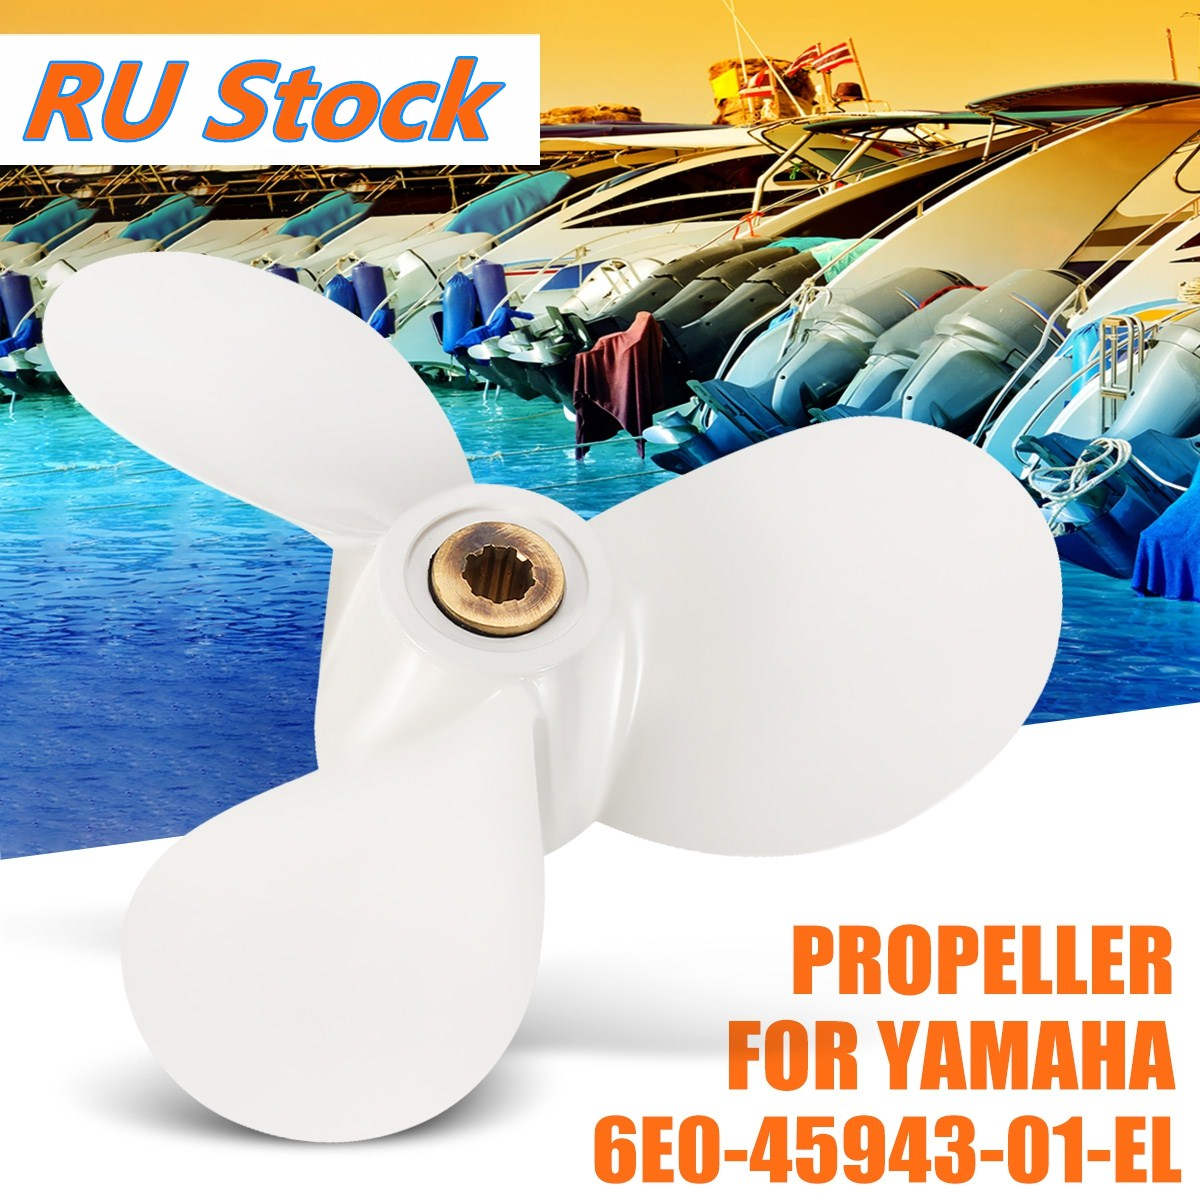 1PCS Boat Motors Marine Propellers For Yamaha Outboard 4HP 5HP 6HP Engine 71/2X 7-BA #6E0-45943-01-EL Radius 9.5 Cm White Colour